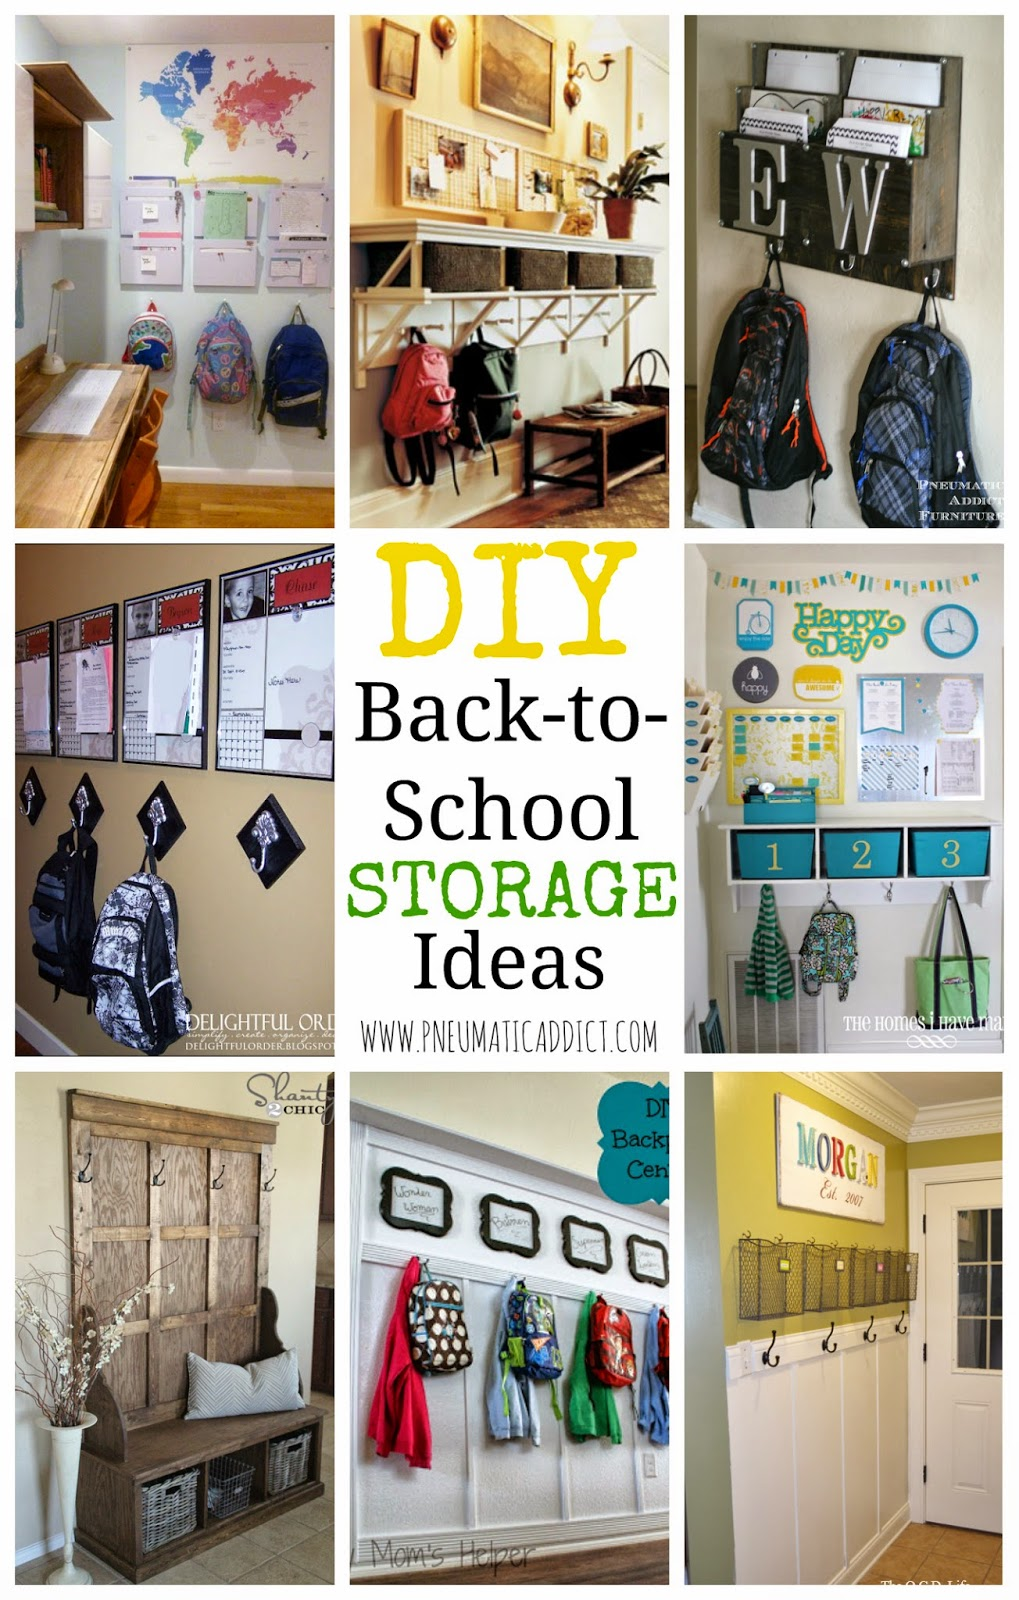 Superbe I Shared A Tutorial To Build Your Own Homework And Backpack Center With You  Last Week, And Now Iu0027m Sharing Some Other DIY Back To School Storage ...